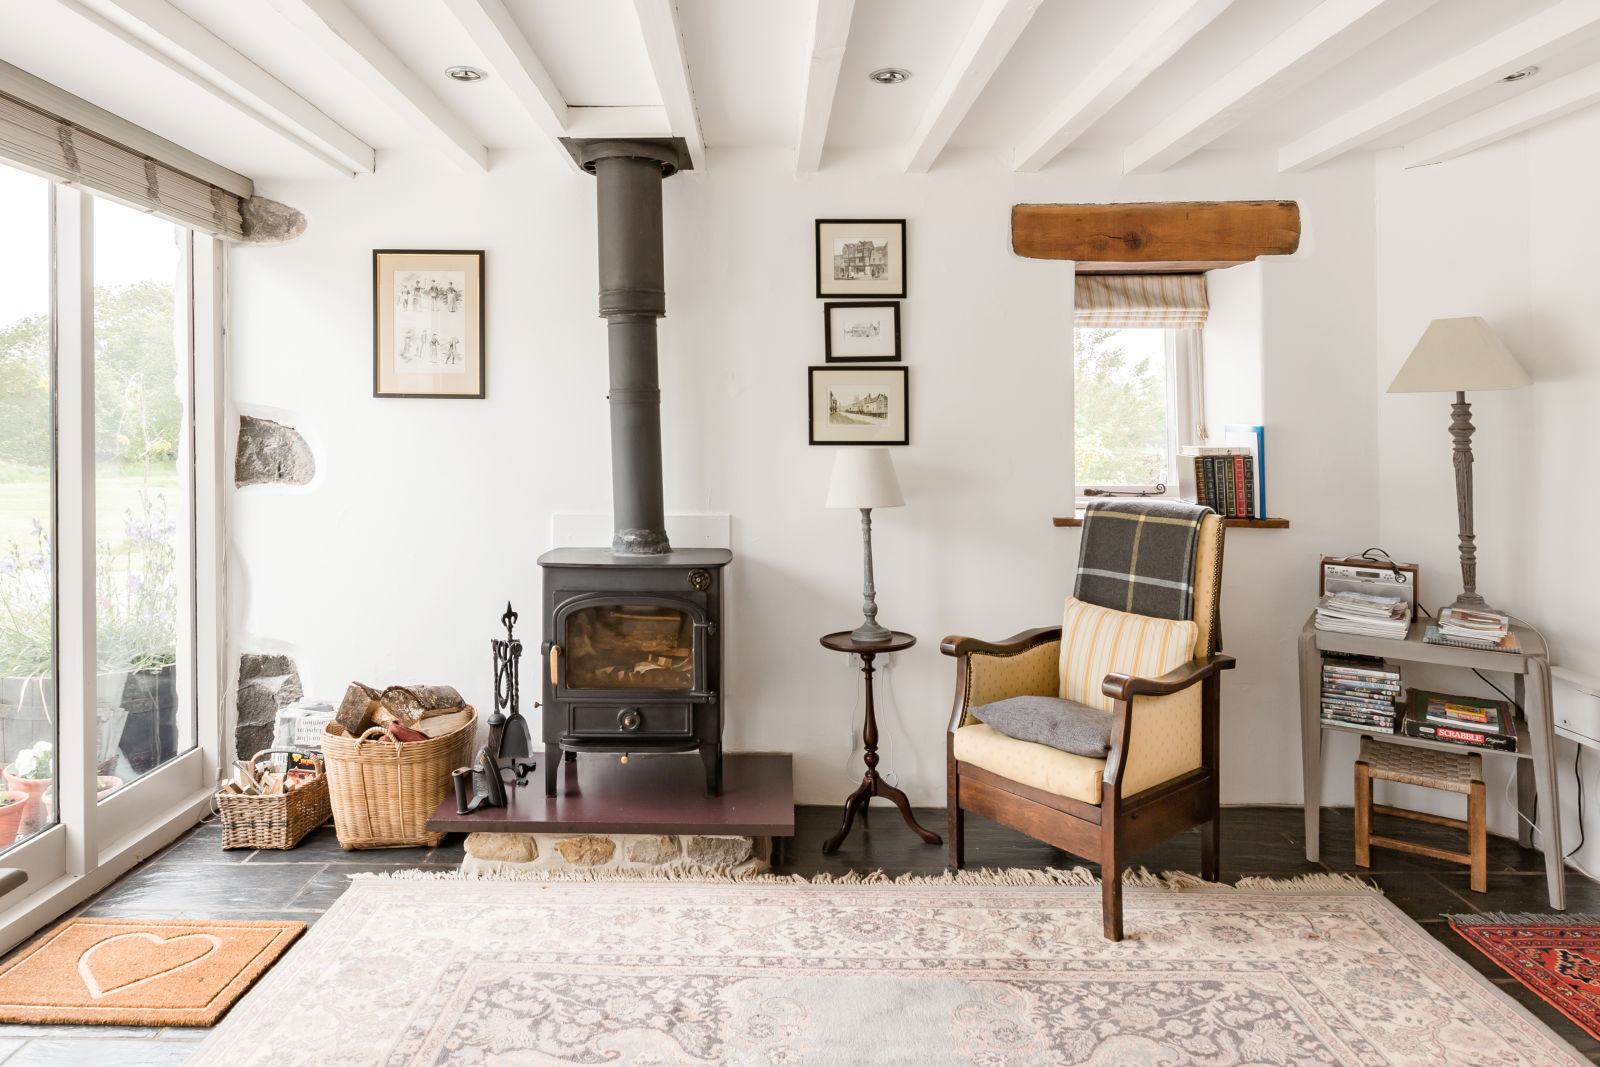 Period Coach House Retreat Wales, Wales Period Coach House Retreat, airbnb uk